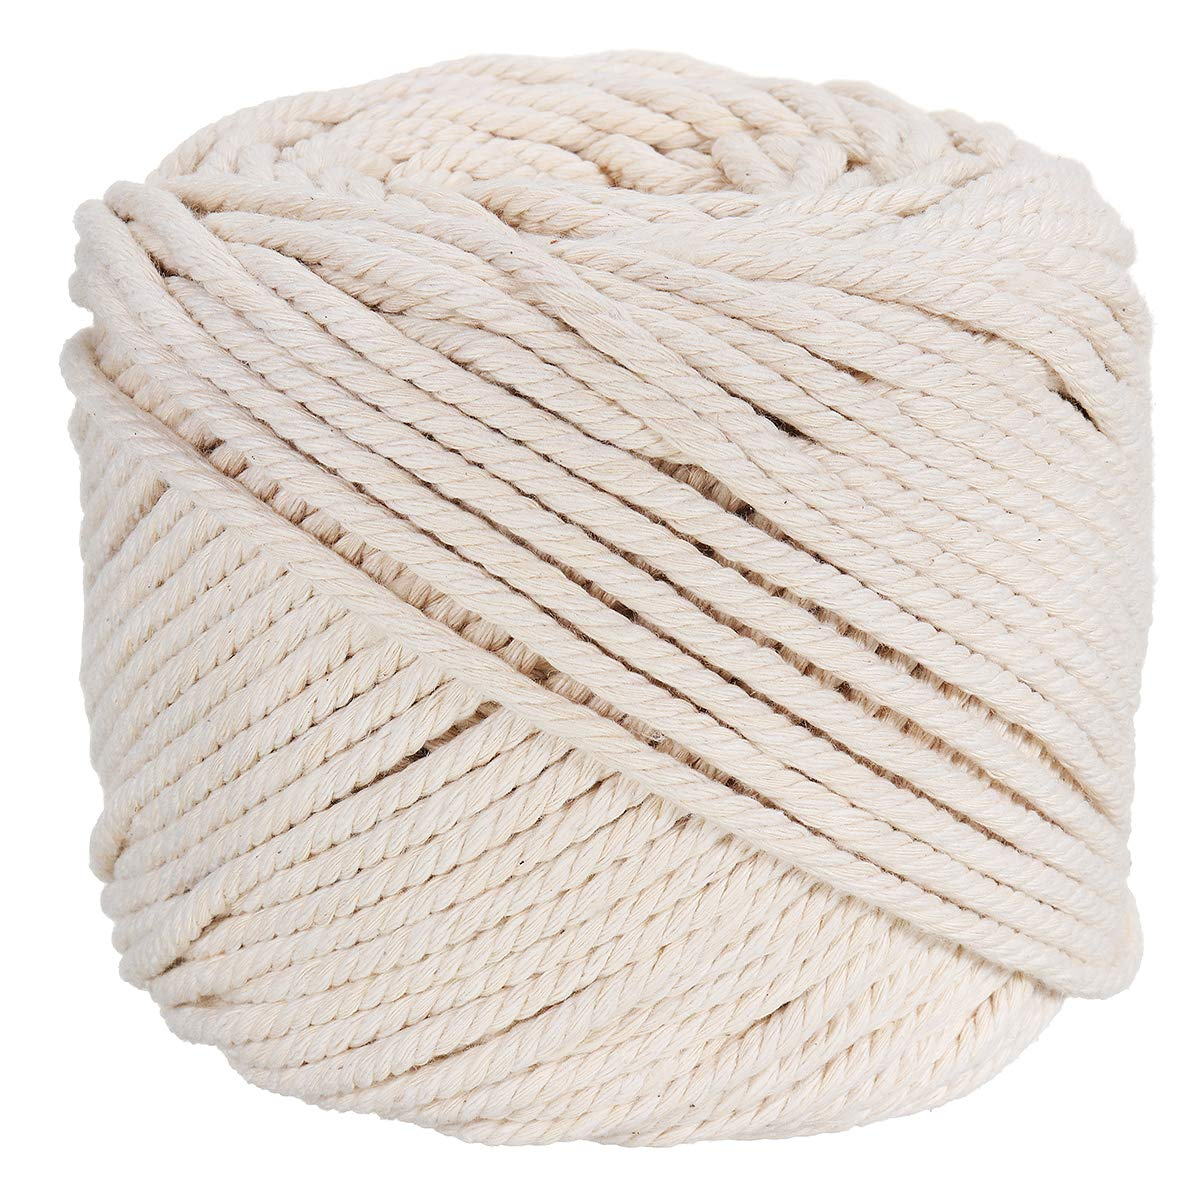 WCHAOEN 4mmx100m Natural Beige Cotton Twisted Cord Rope DIY Craft Macrame Woven String Braided Wire Accessories Tool